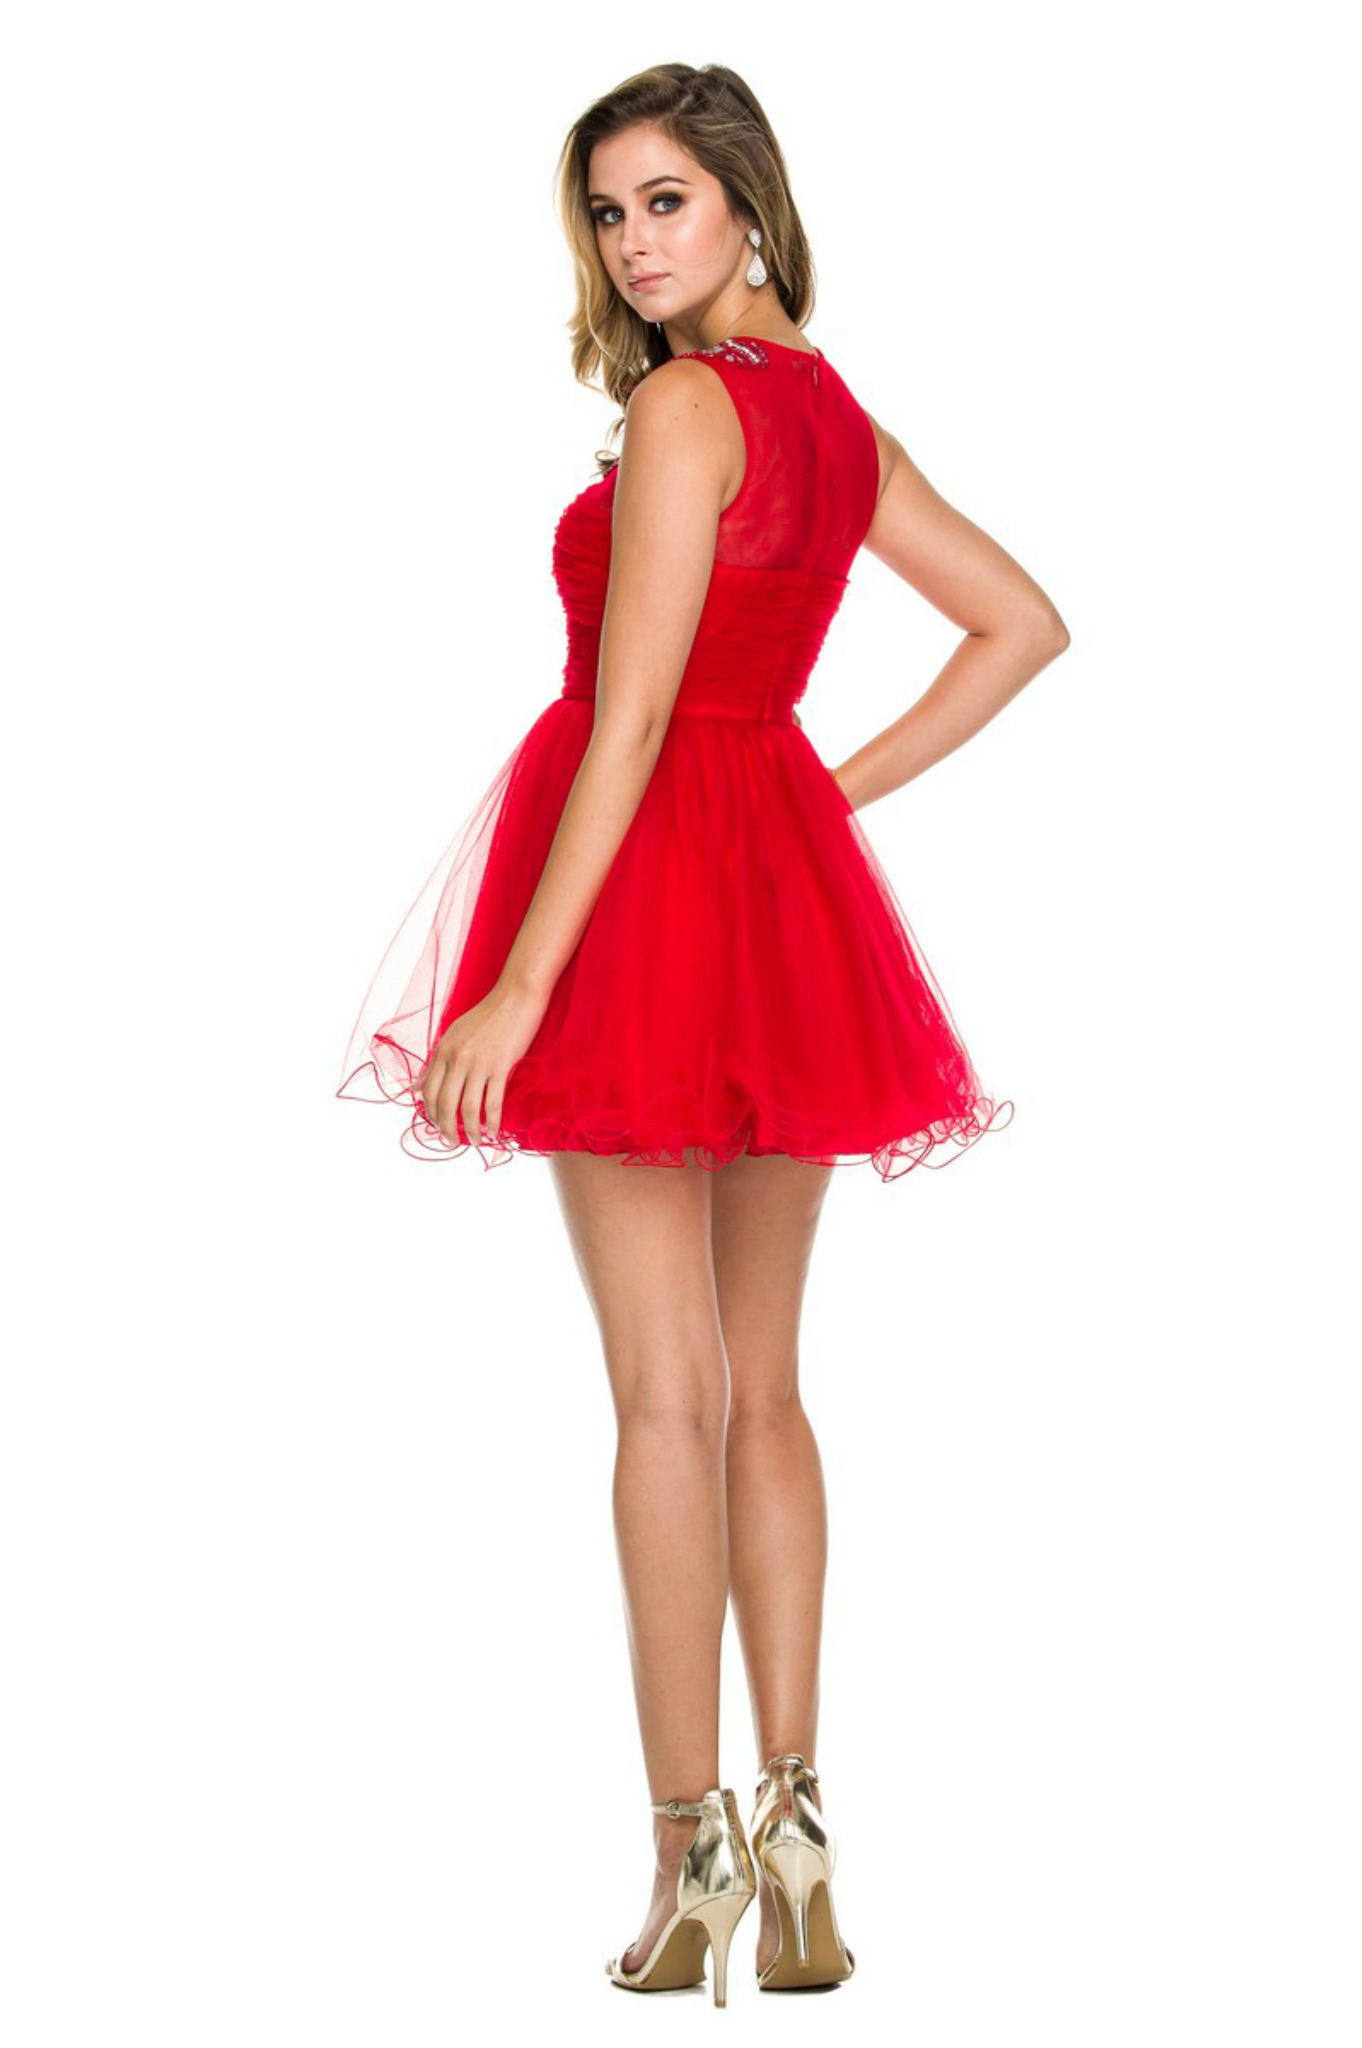 Buy cheap short prom dresses online at ragabjv.gq today! We offer a wide selection of short formal dresses for School Prom. All are hot online sale and inexpensive for you to .